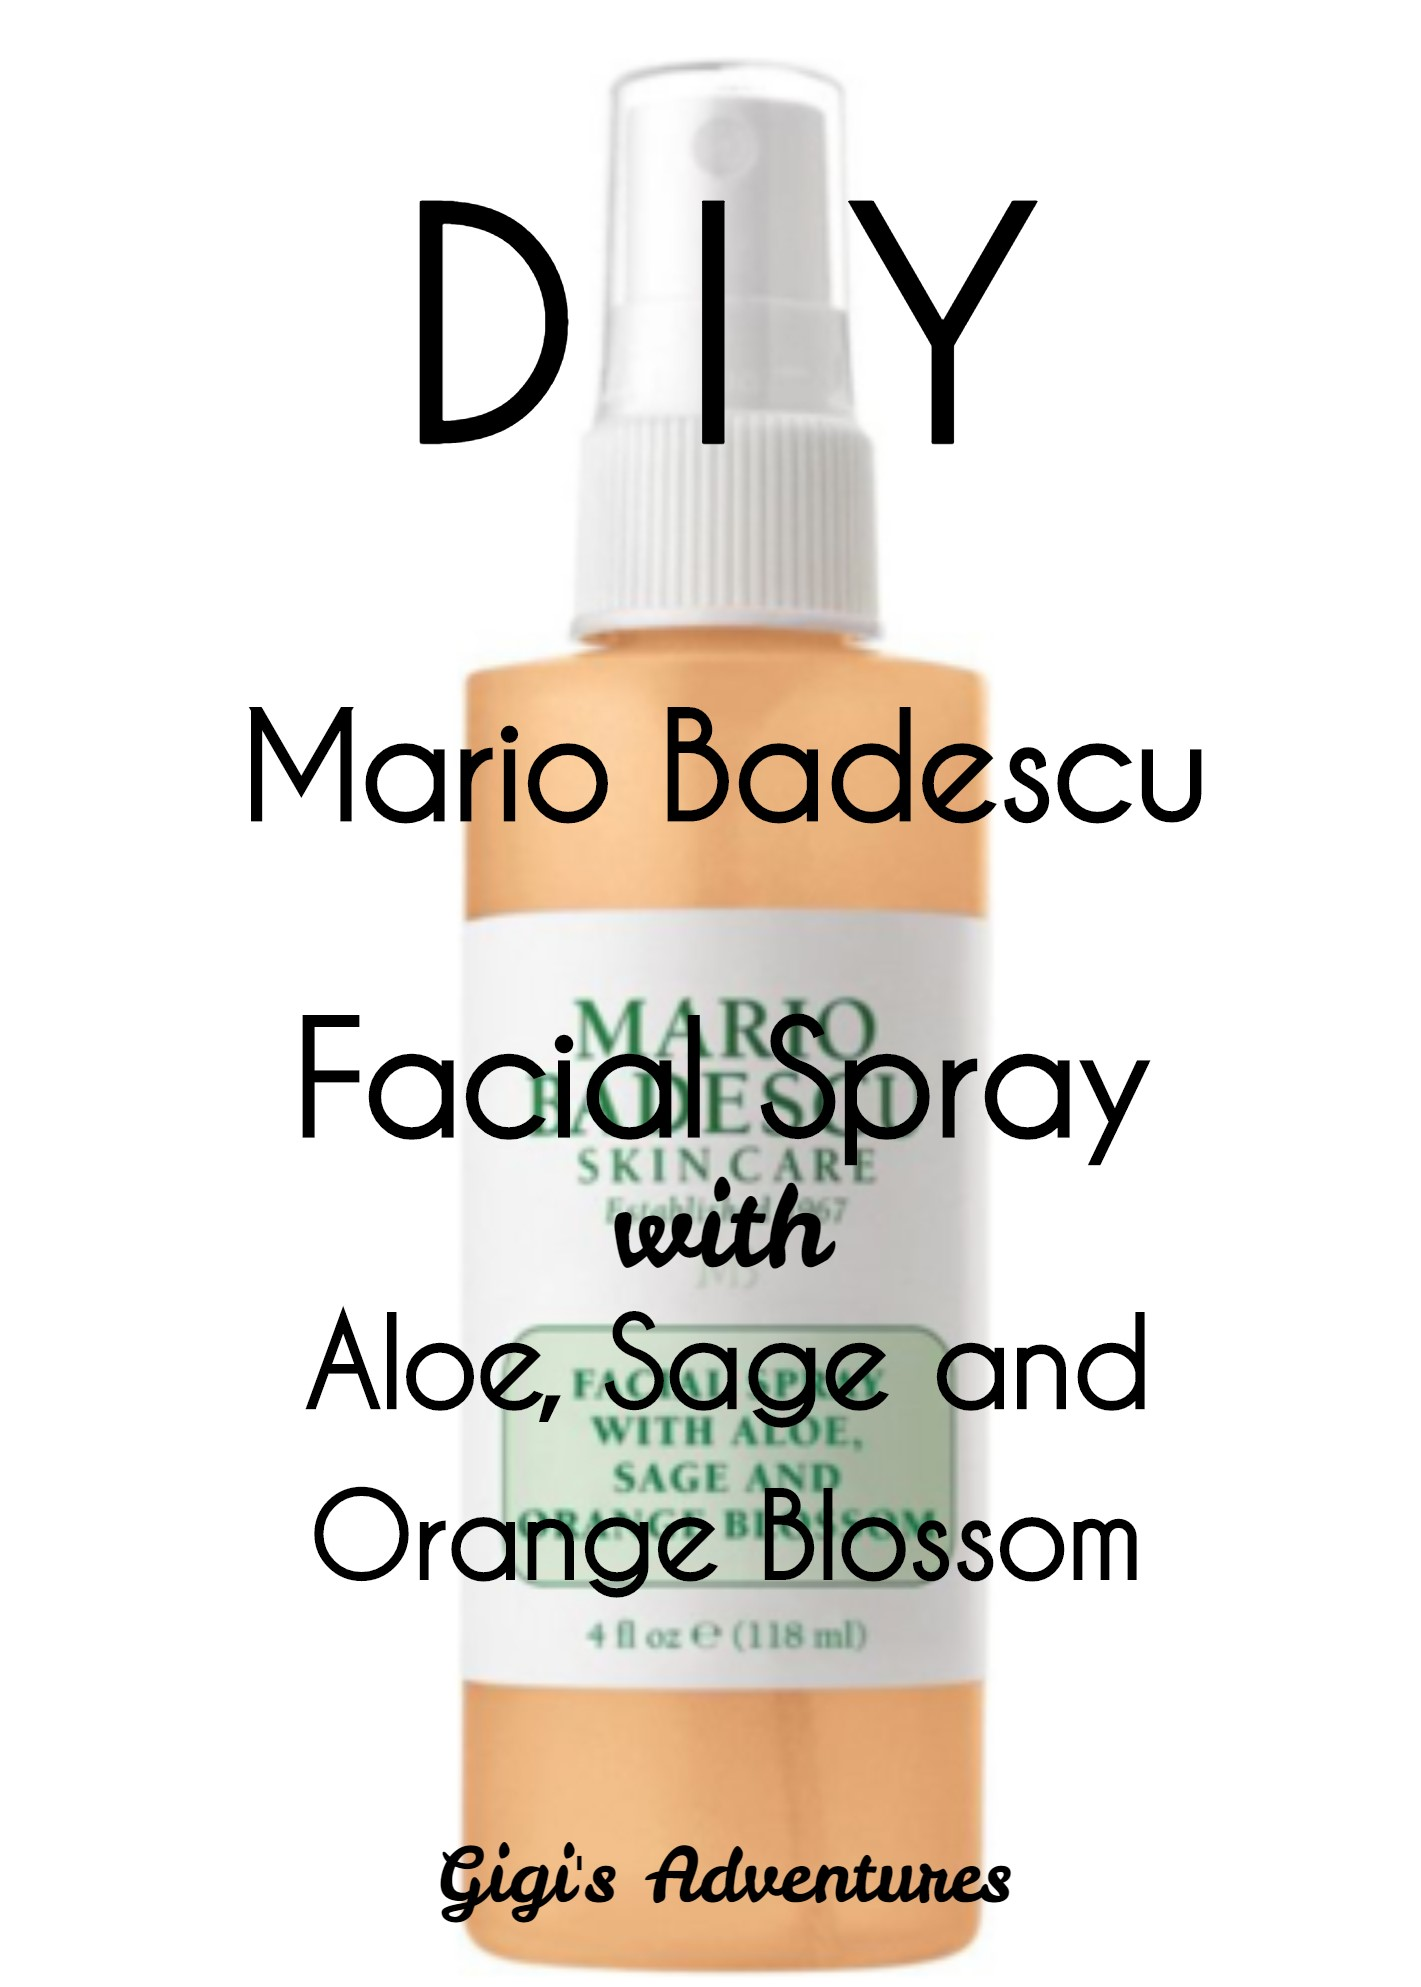 Diy Mario Badescu Facial Spray With Aloe Sage And Orange